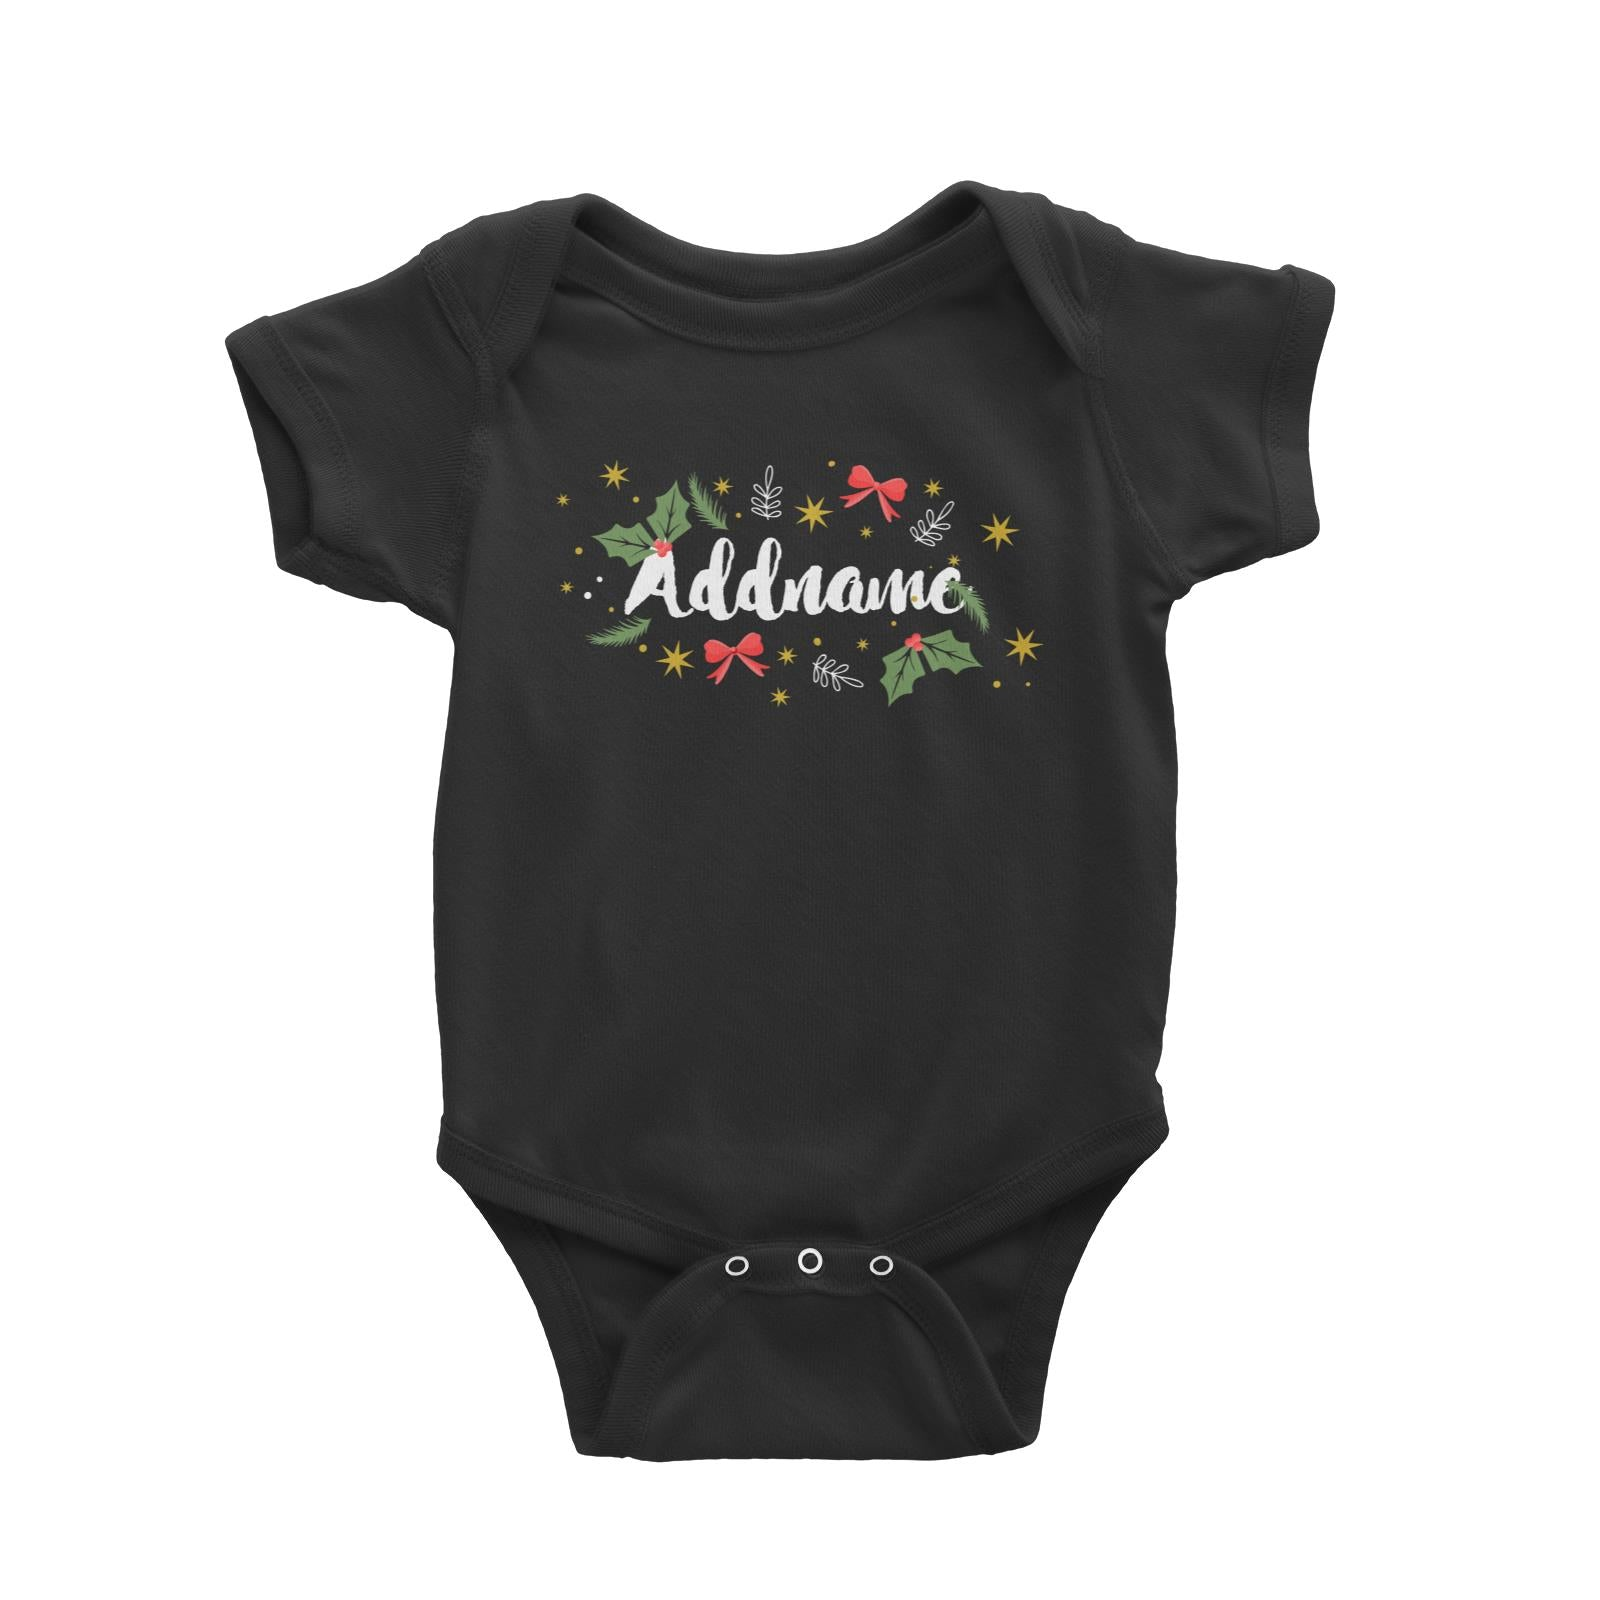 Christmas Elements Addname Baby Romper  Personalizable Designs Lettering Matching Family